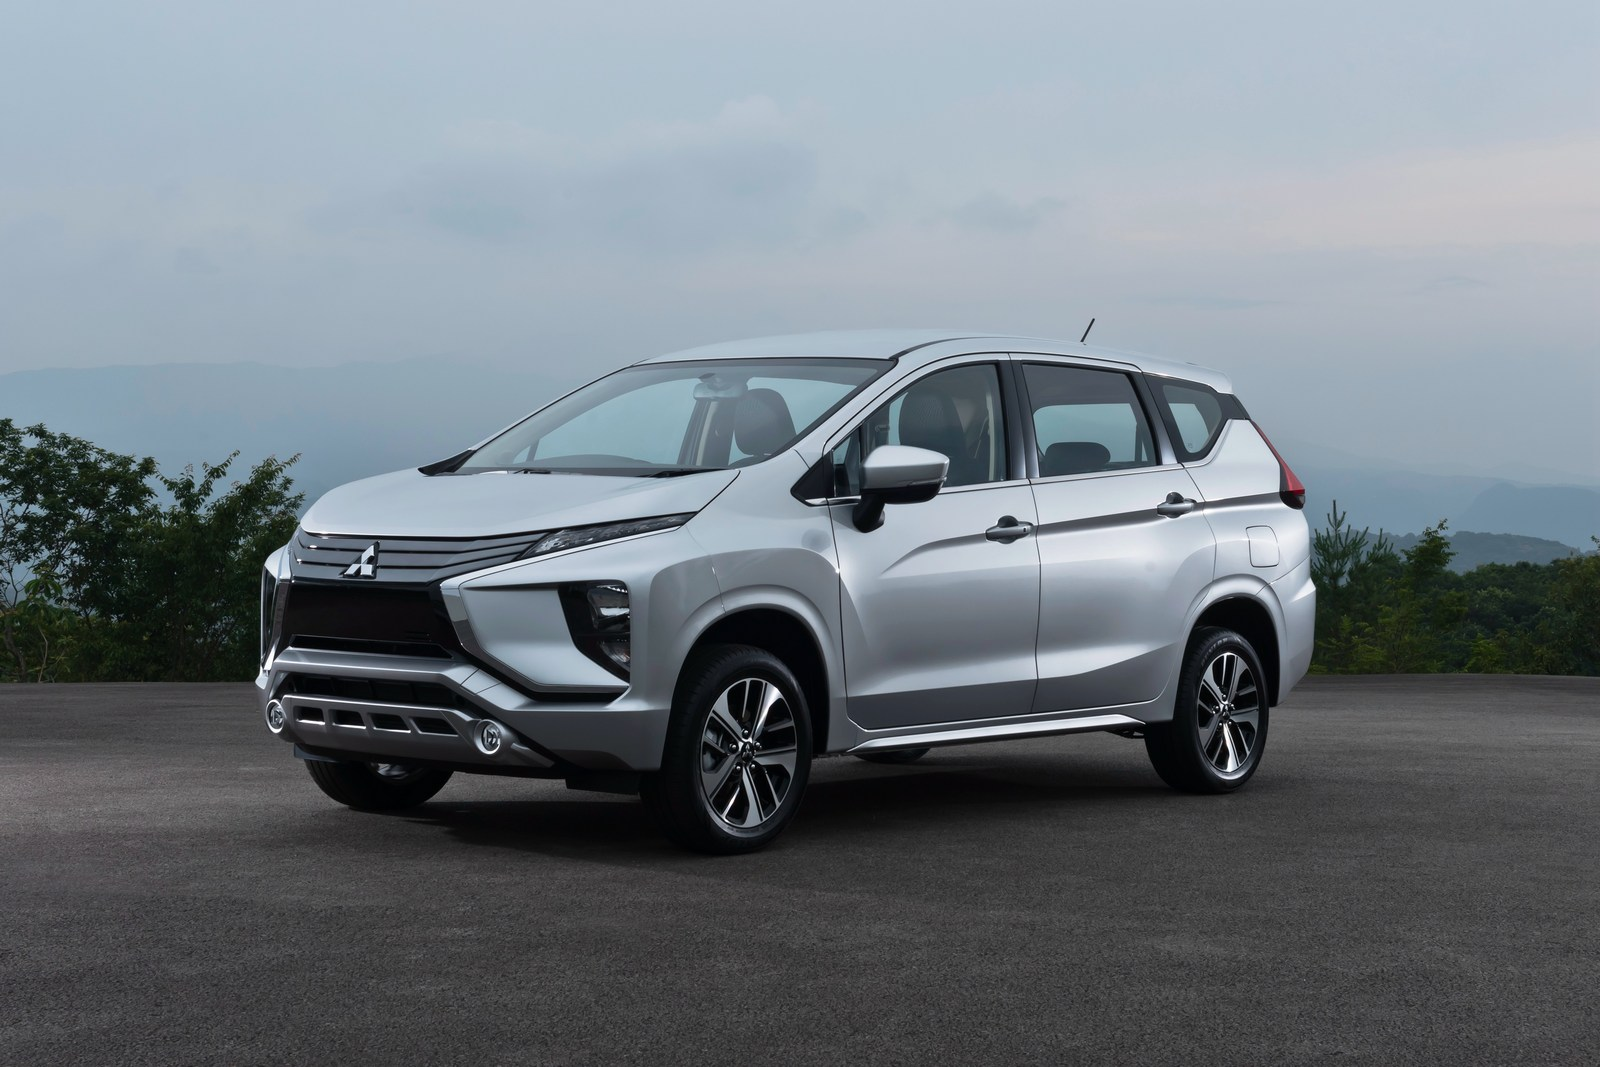 2018-mitsubishi-xpander-looks-like-it-came-from-outer-space-119720_1.jpg